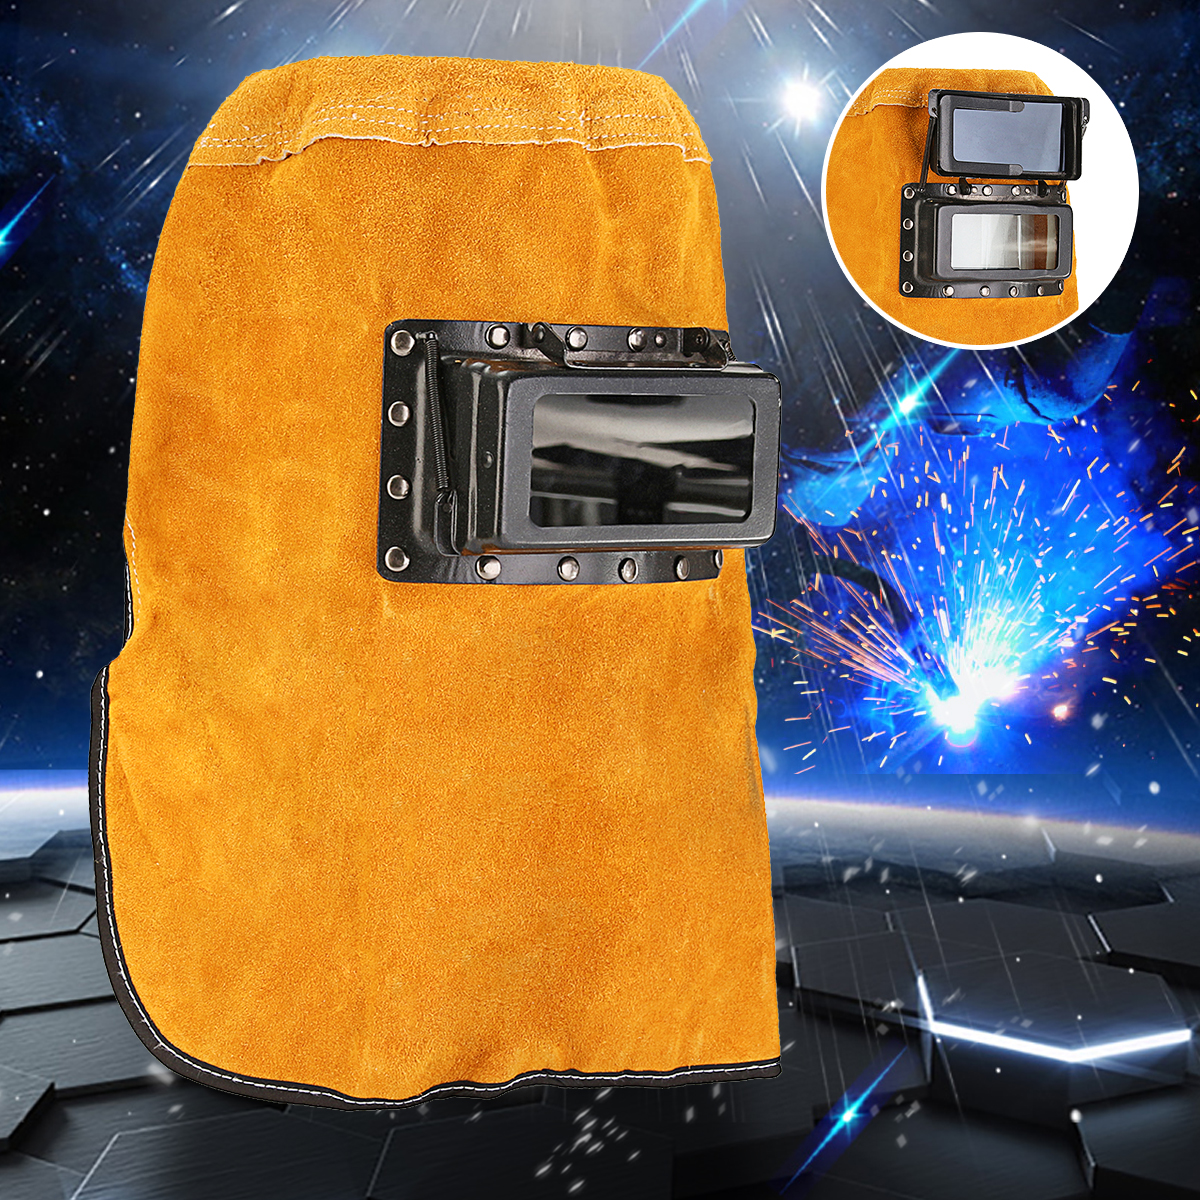 Durable Heat Resistant Breathable Welding Helmet Protection Mask with Lens, Leather Welding Mask